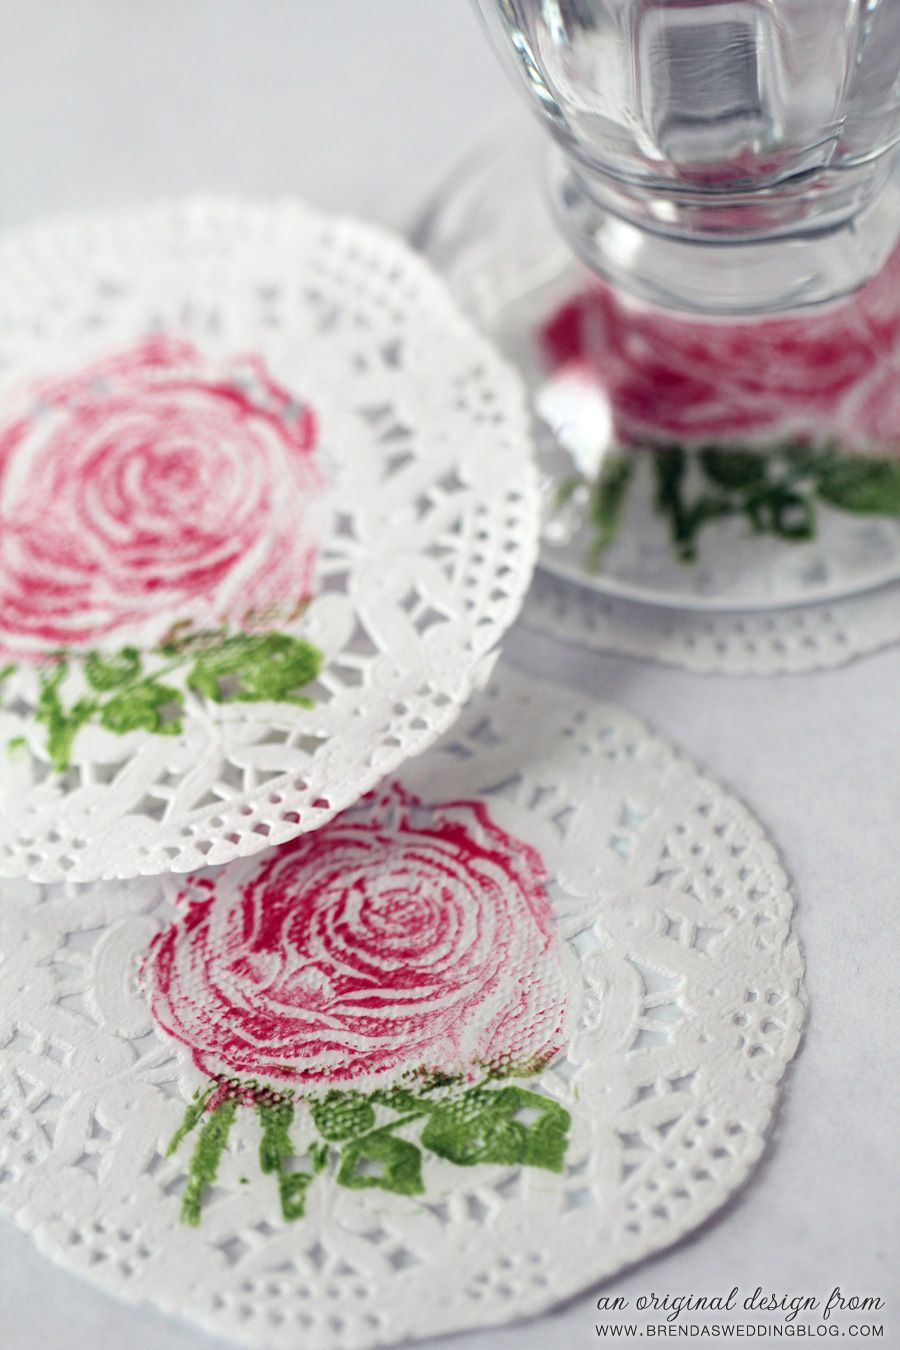 Diy Rubber Stamped Rose Paper Doily Coasters A Quick Table Number